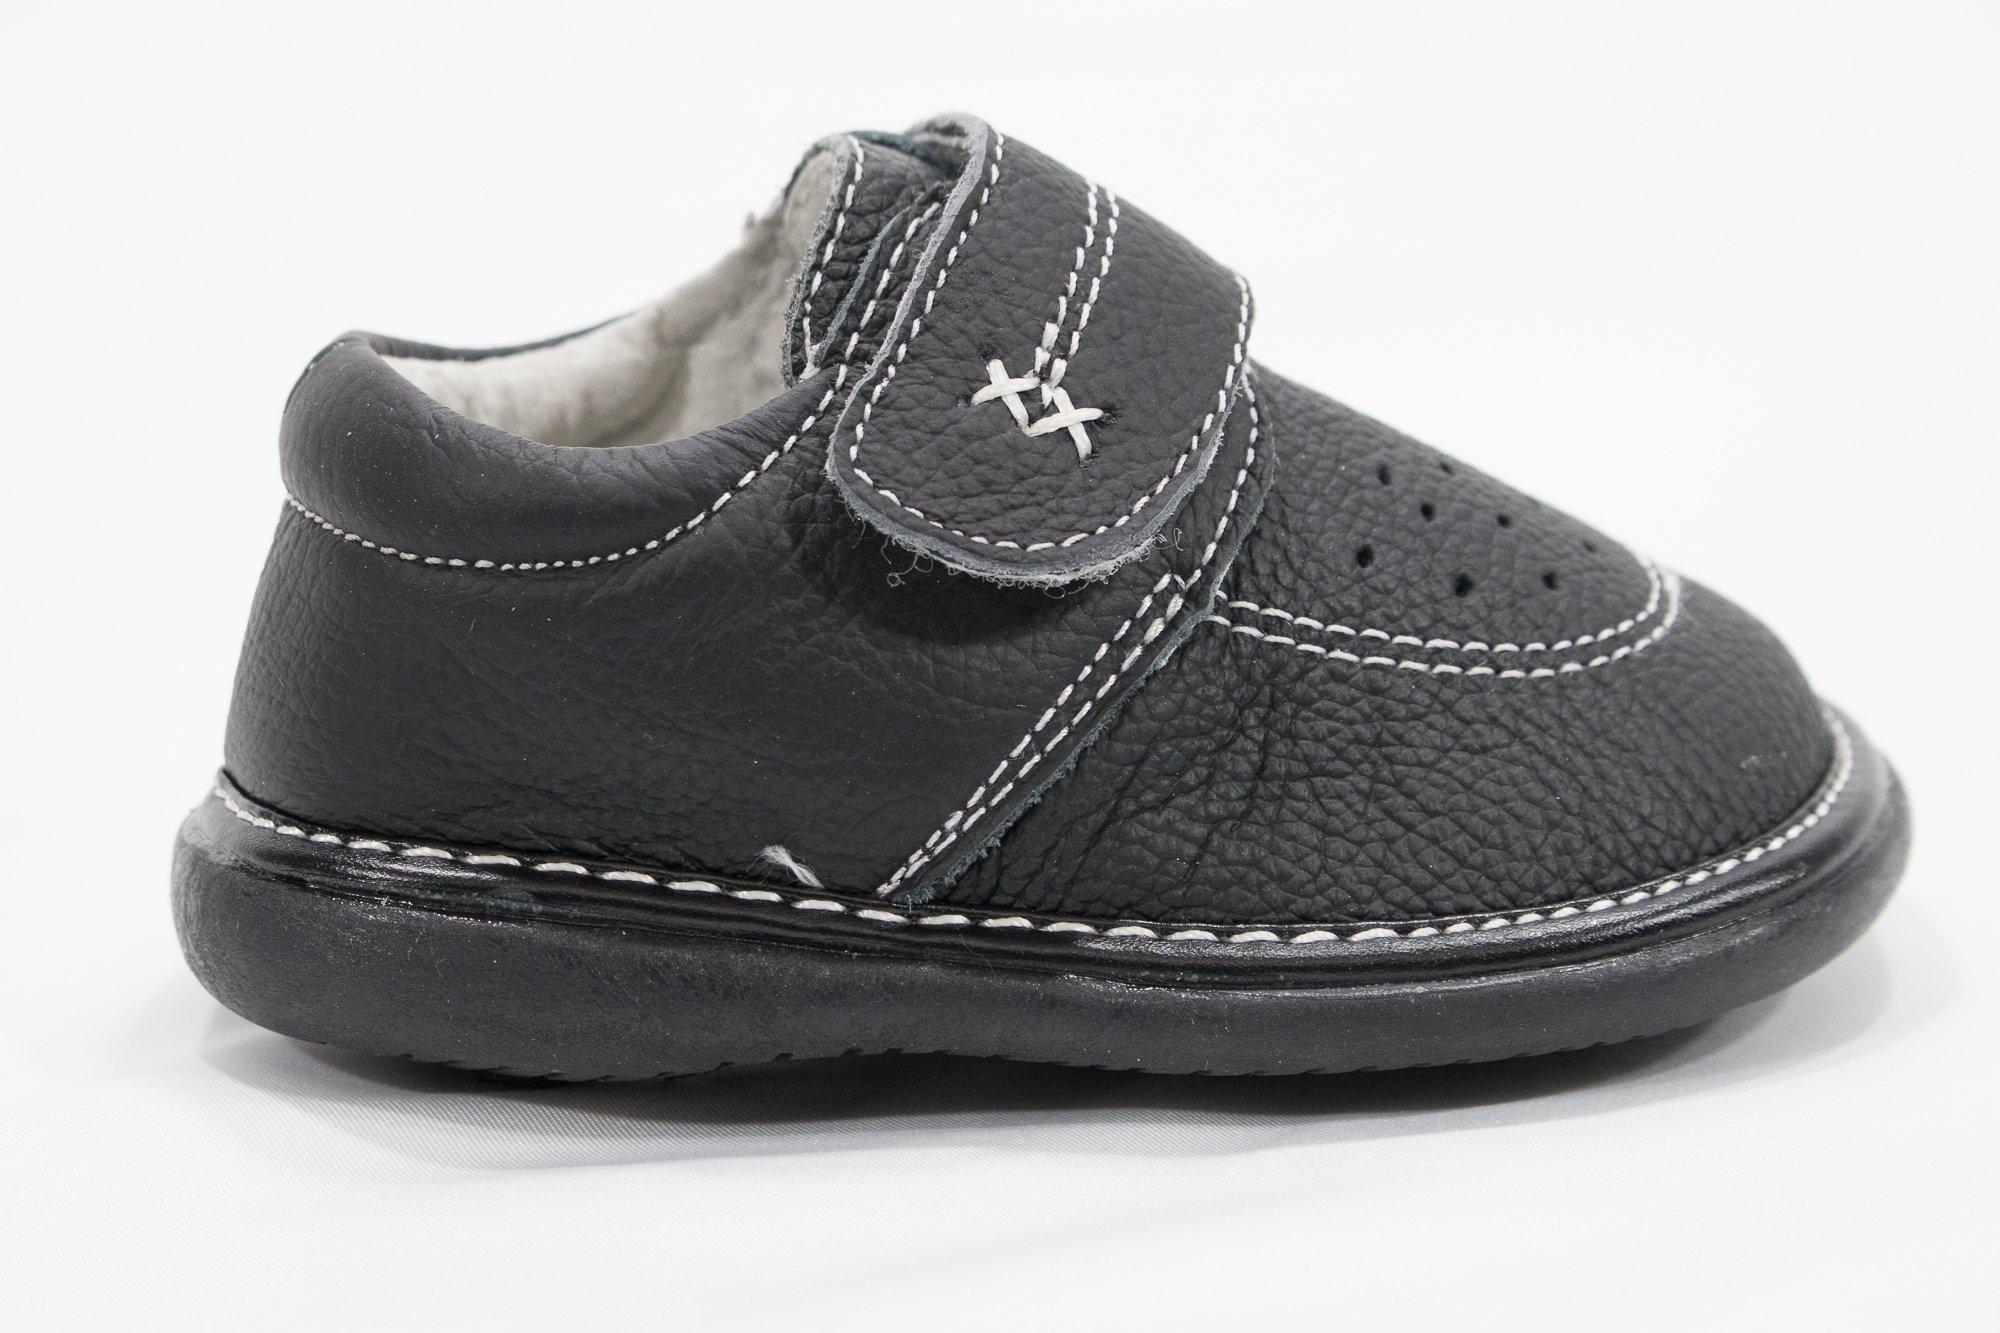 Anderson Baby Care LLC Squeaky Shoes for Toddler Boys (4T, Black Loafer) by Anderson Baby Care LLC (Image #7)